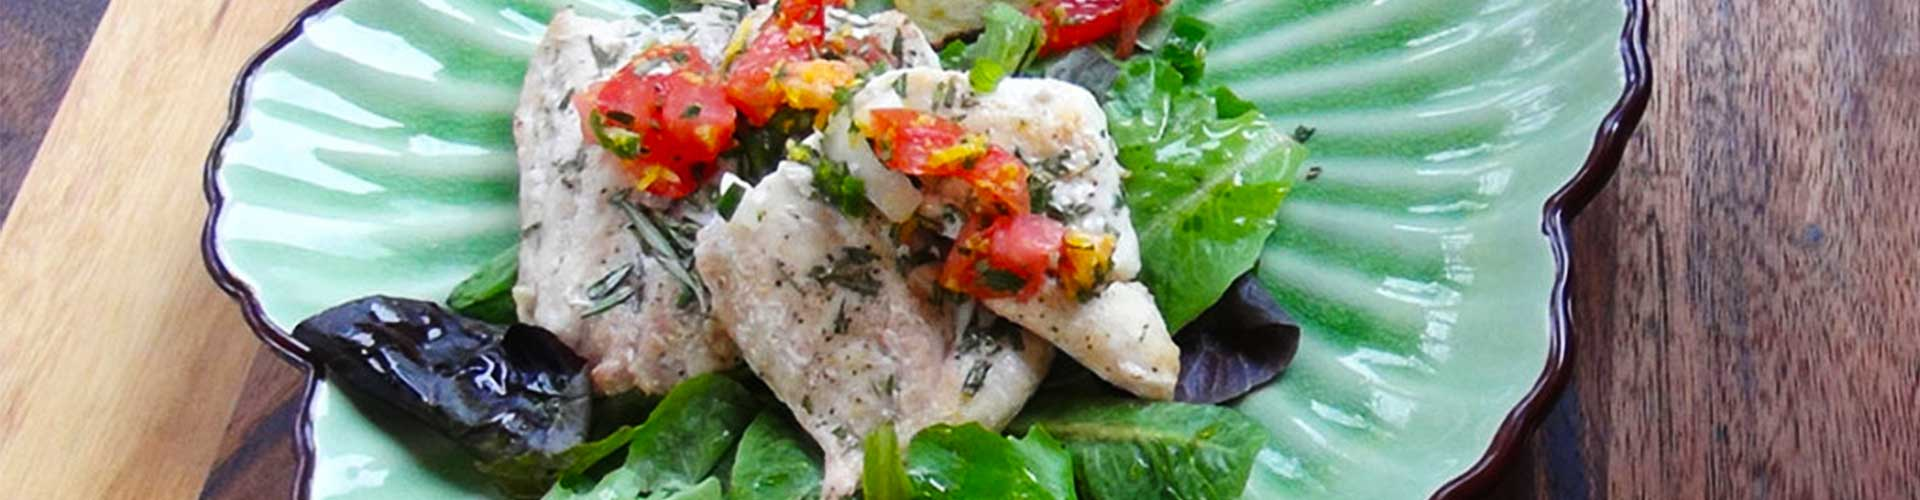 Grilled Grouper with Basil Tomato Sauce